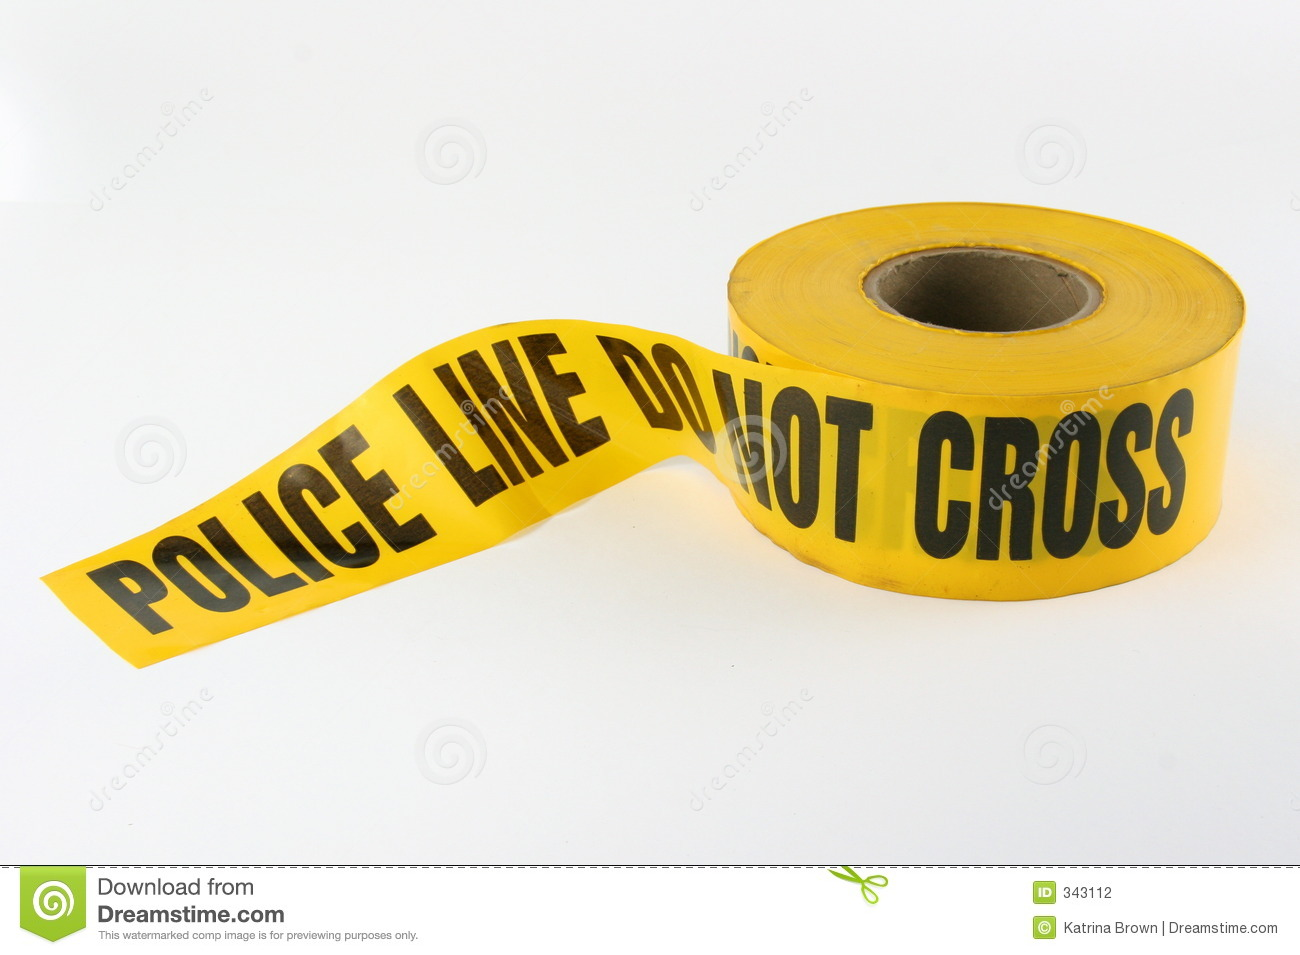 Police Tape Clipart - Clipart Kid